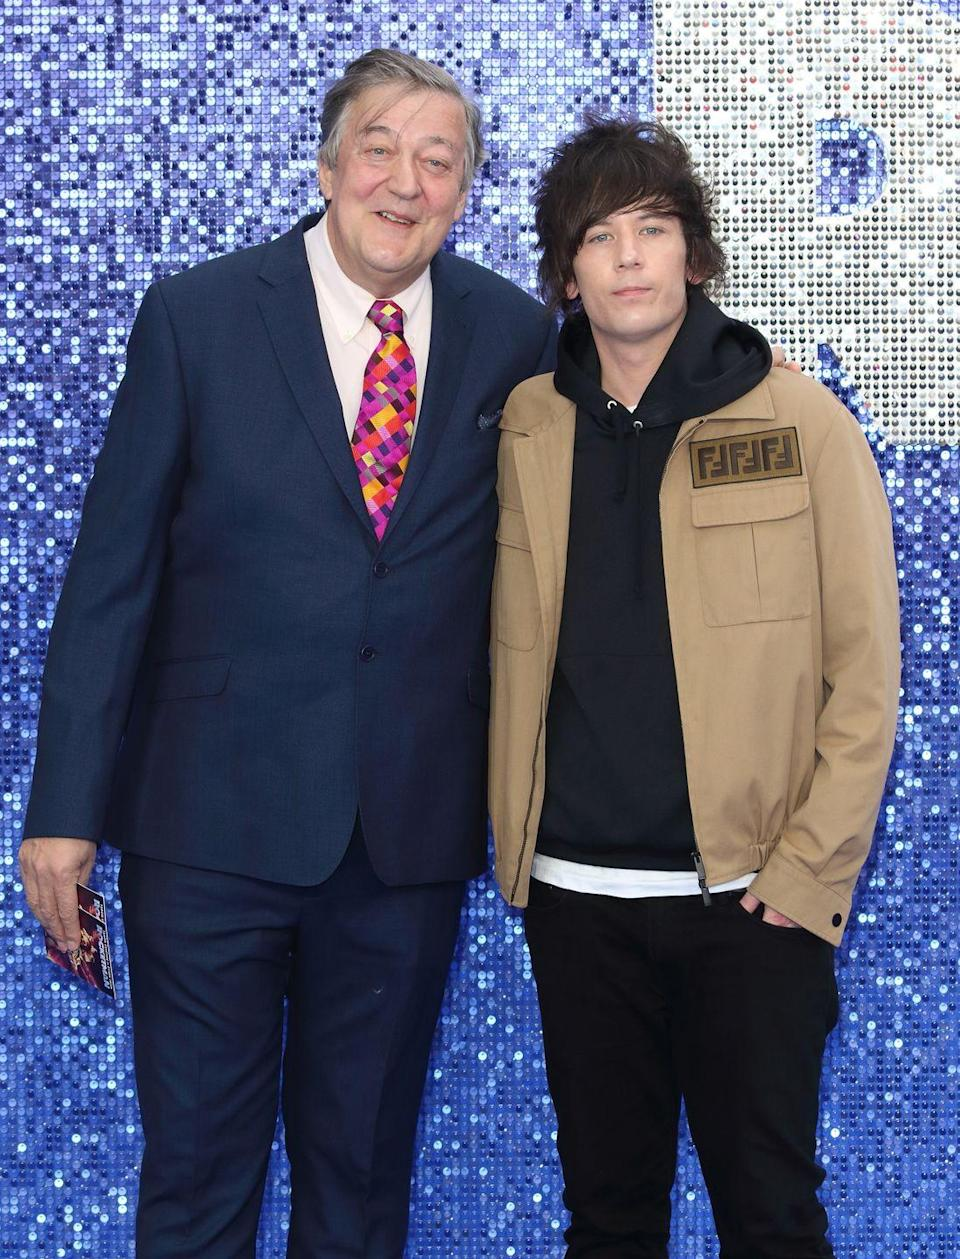 "<p>The couple met in 2014 and apparently hit it off. <em><a href=""https://www.thesun.co.uk/tvandshowbiz/5038334/stephen-fry-husband-elliott-spencer-age/"" rel=""nofollow noopener"" target=""_blank"" data-ylk=""slk:The Sun"" class=""link rapid-noclick-resp"">The Sun</a></em> reports that they were married in 2015.</p>"